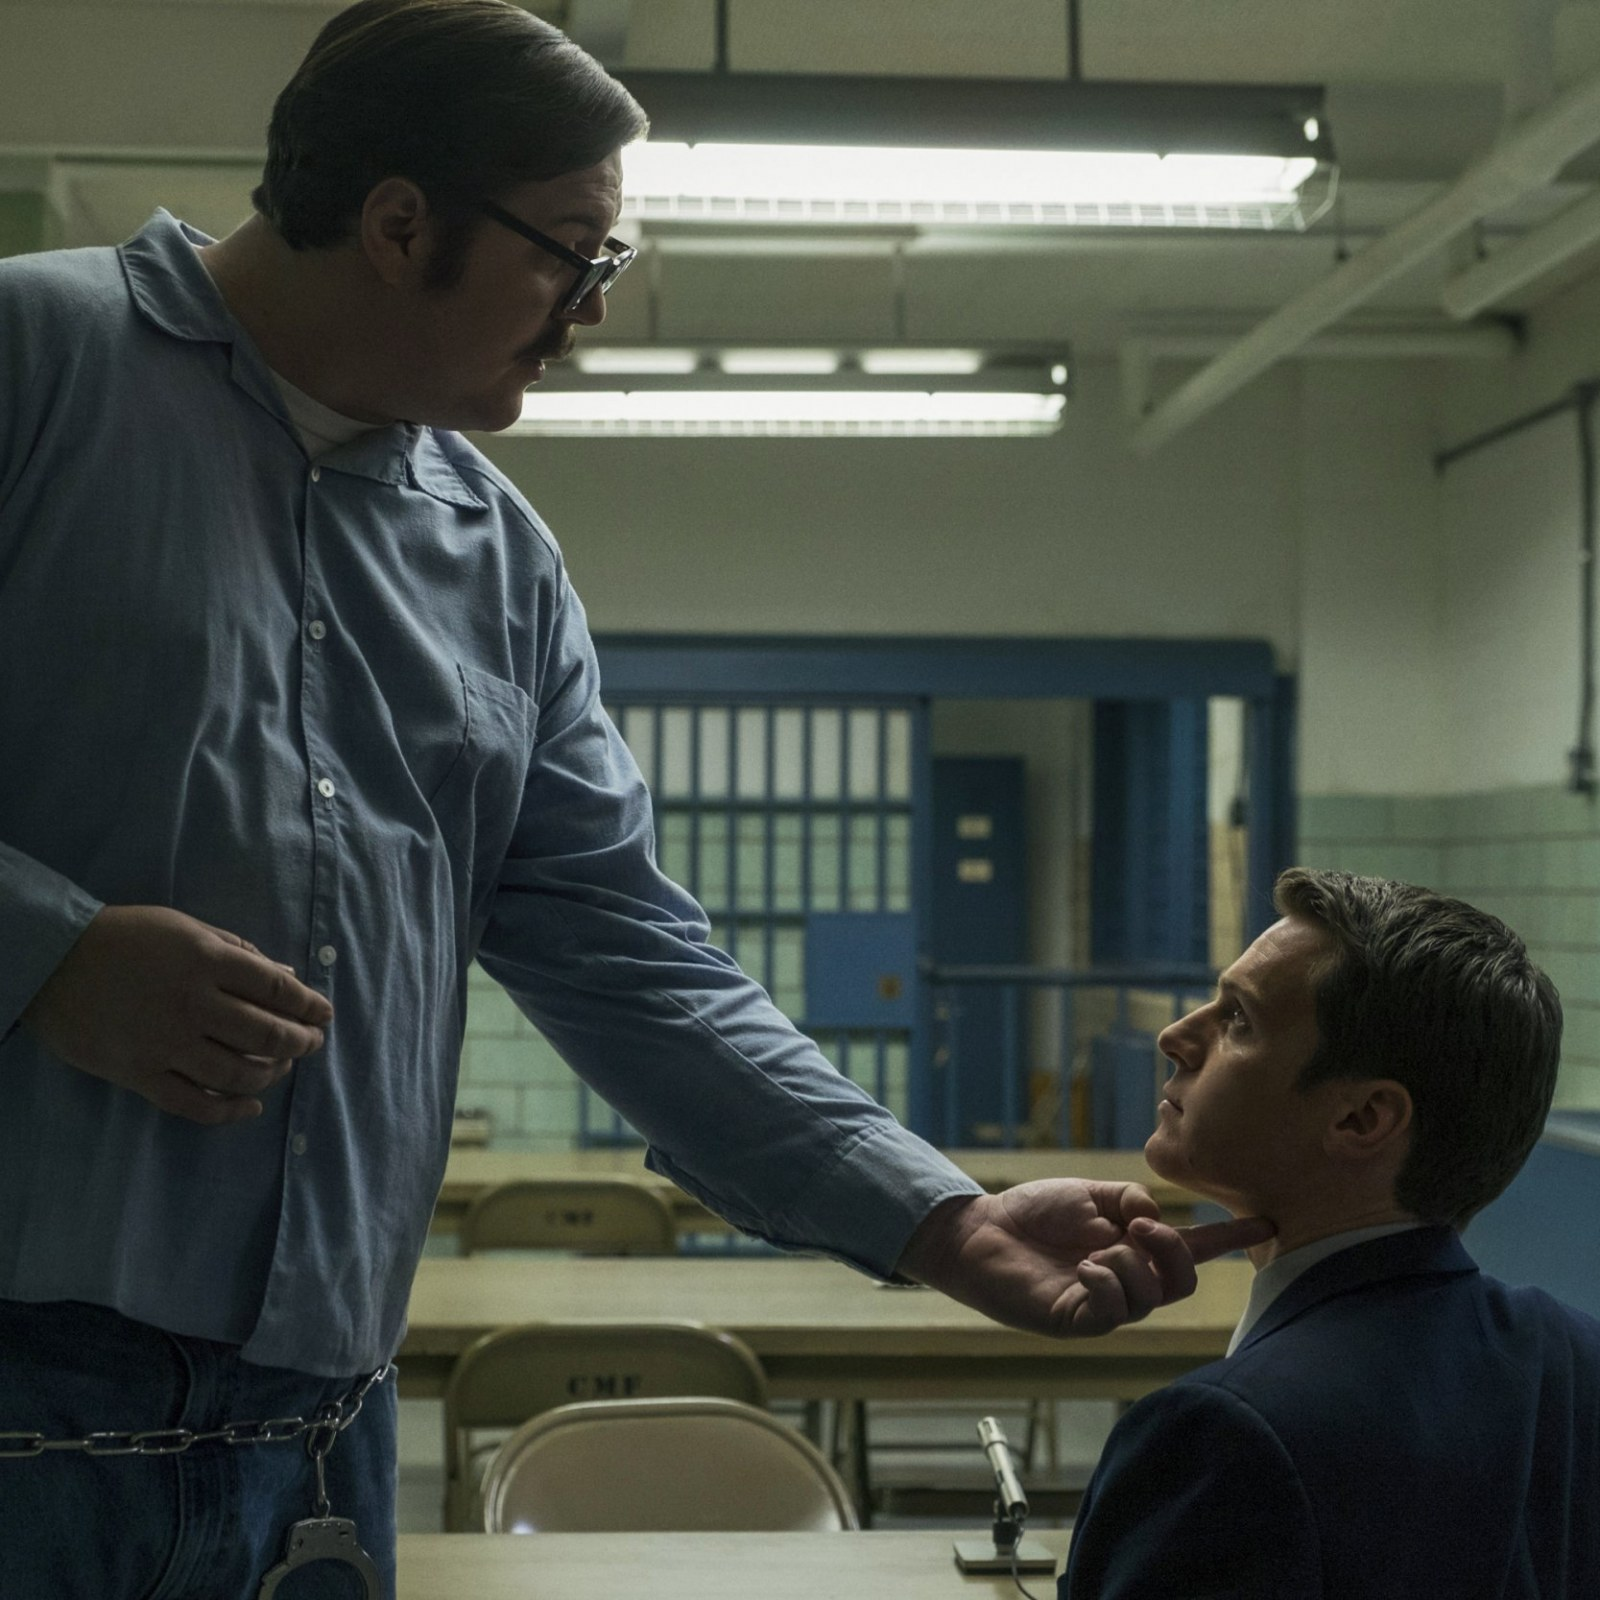 Mindhunter' Season 2: 4 Serial Killers Who Could Appear